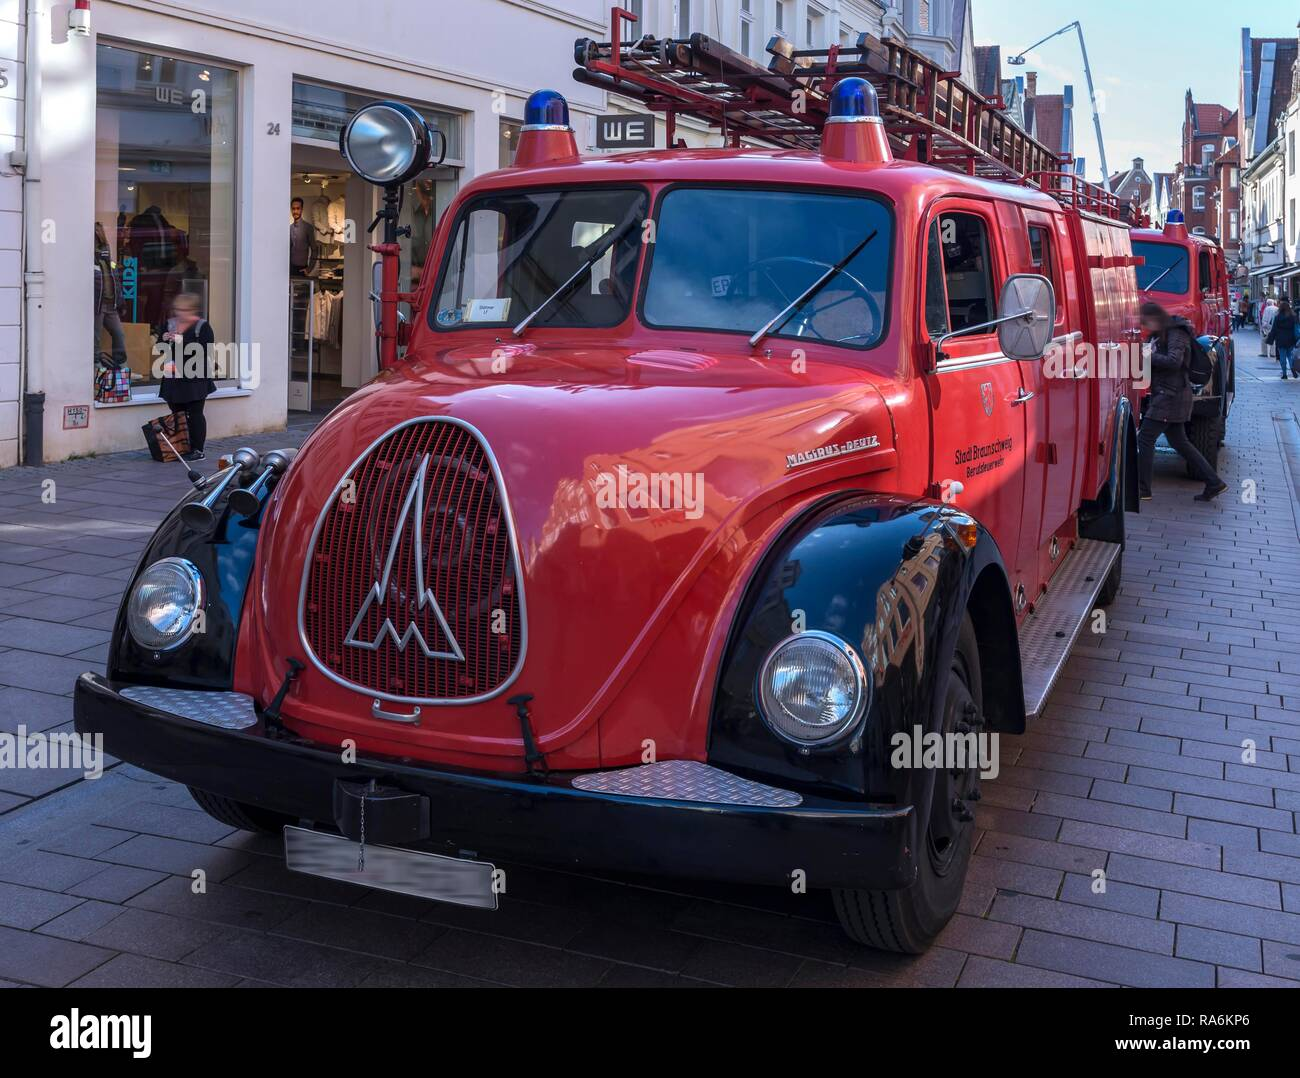 Oldtimer, fire engine Magirus Deutz, built 1950s, 150th anniversary of the state fire brigade association of Lower Saxony - Stock Image